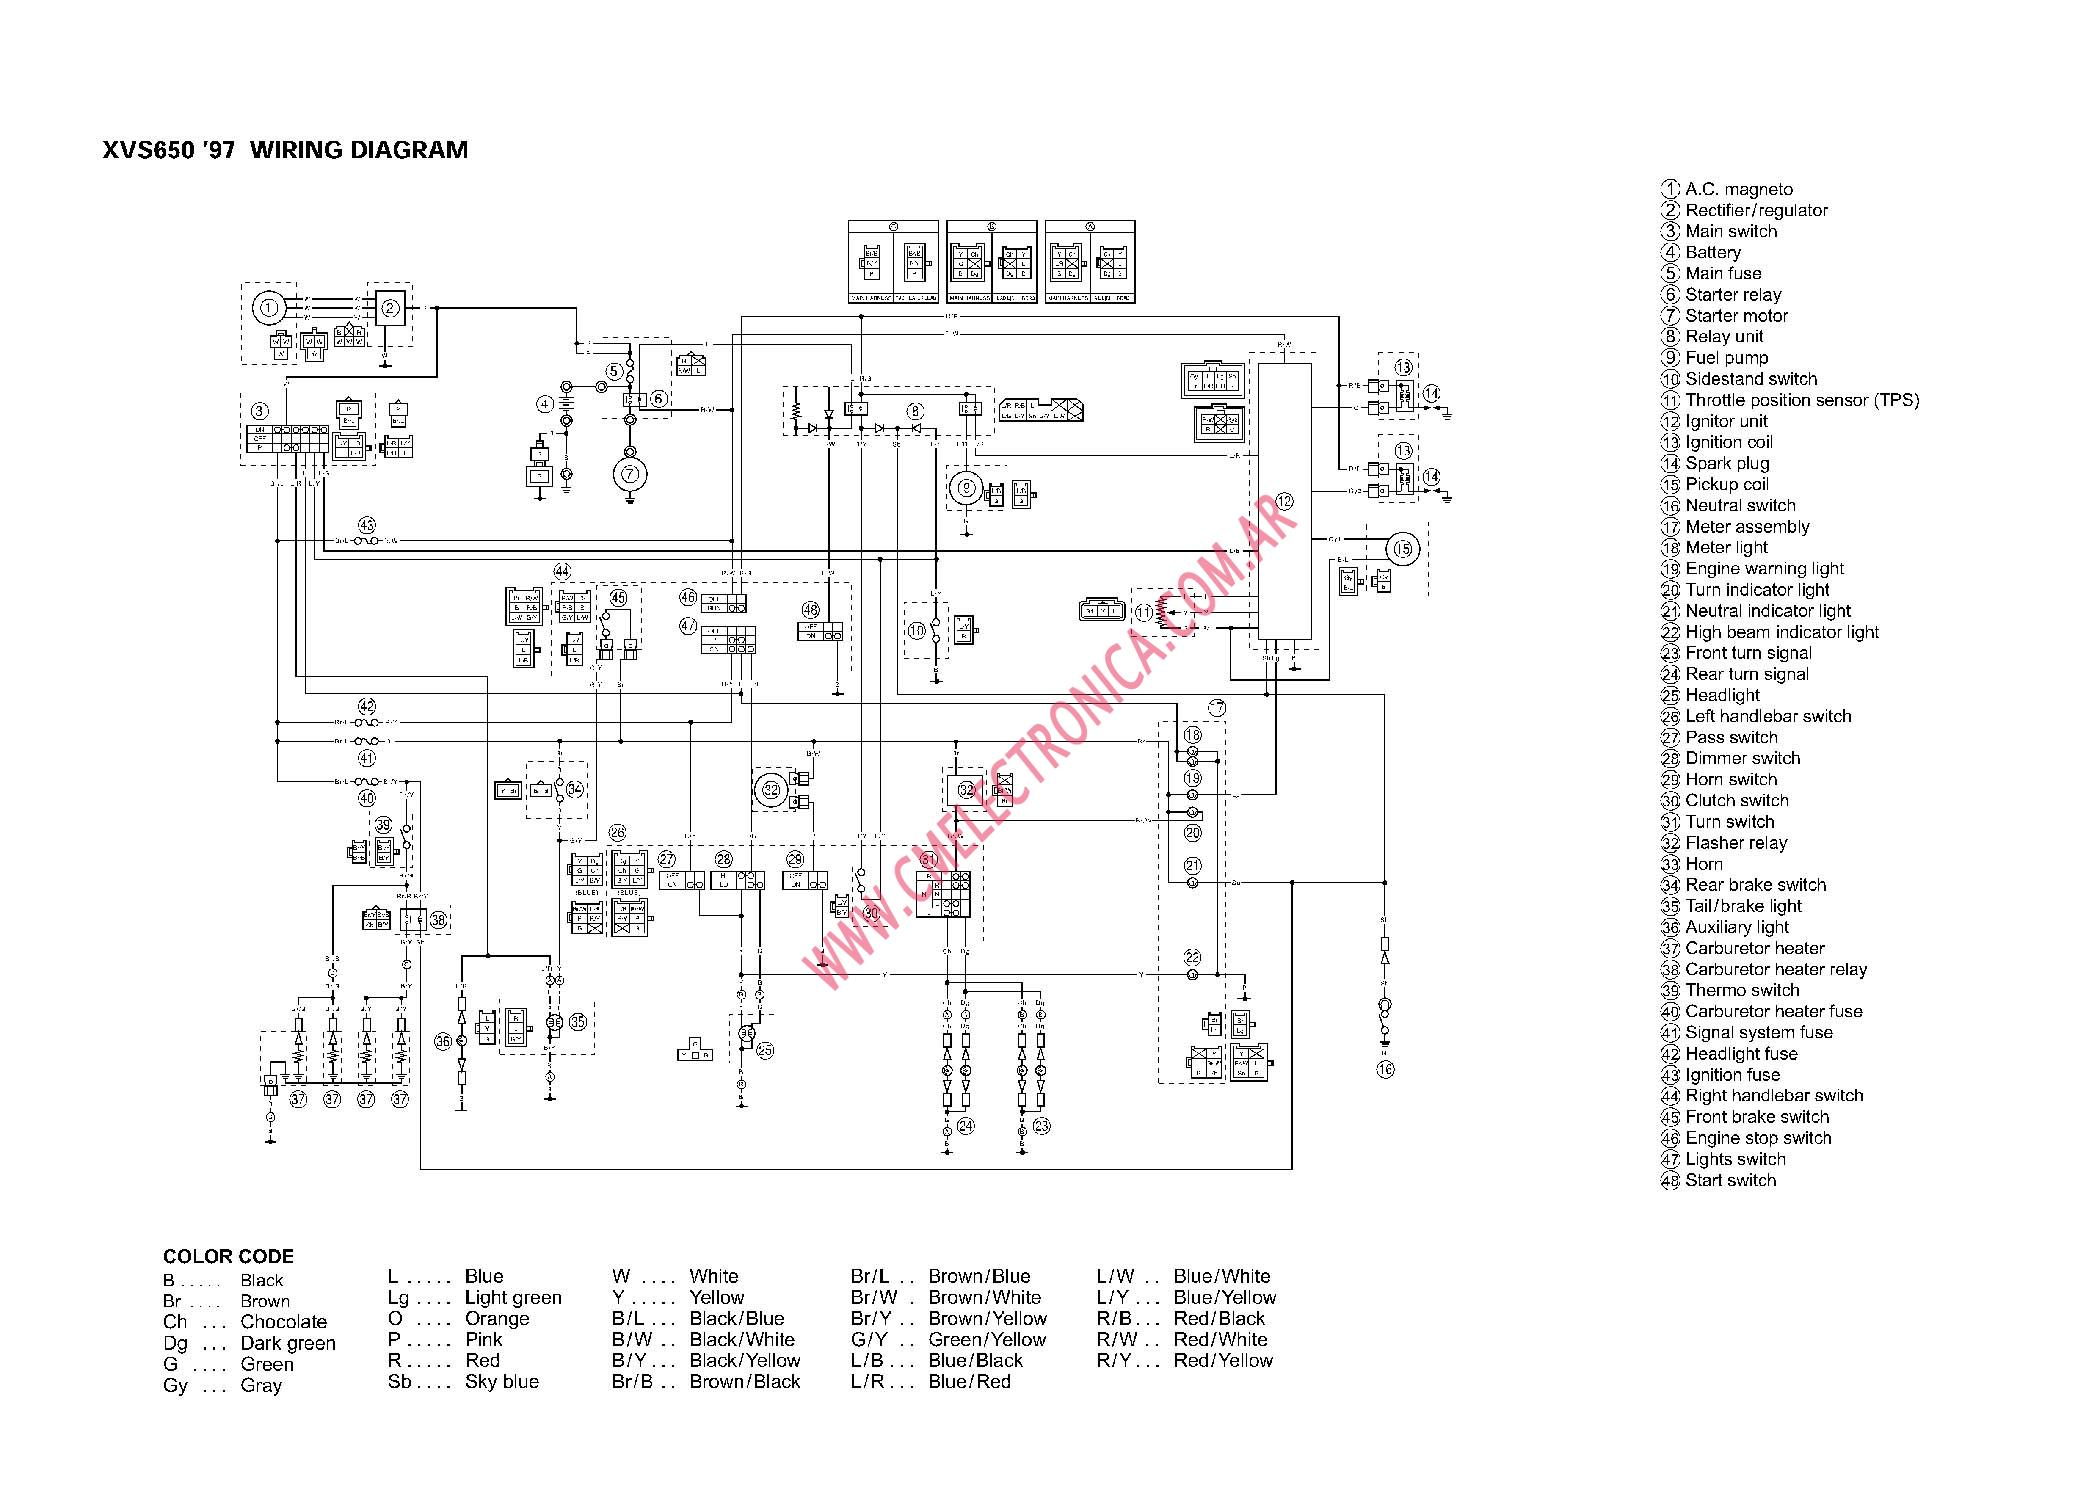 Yamaha Xvs 650 Wiring Diagram Manual Of V Star Diagrama Xvs650 Rh Cmelectronica Com Ar 2000 Electrical